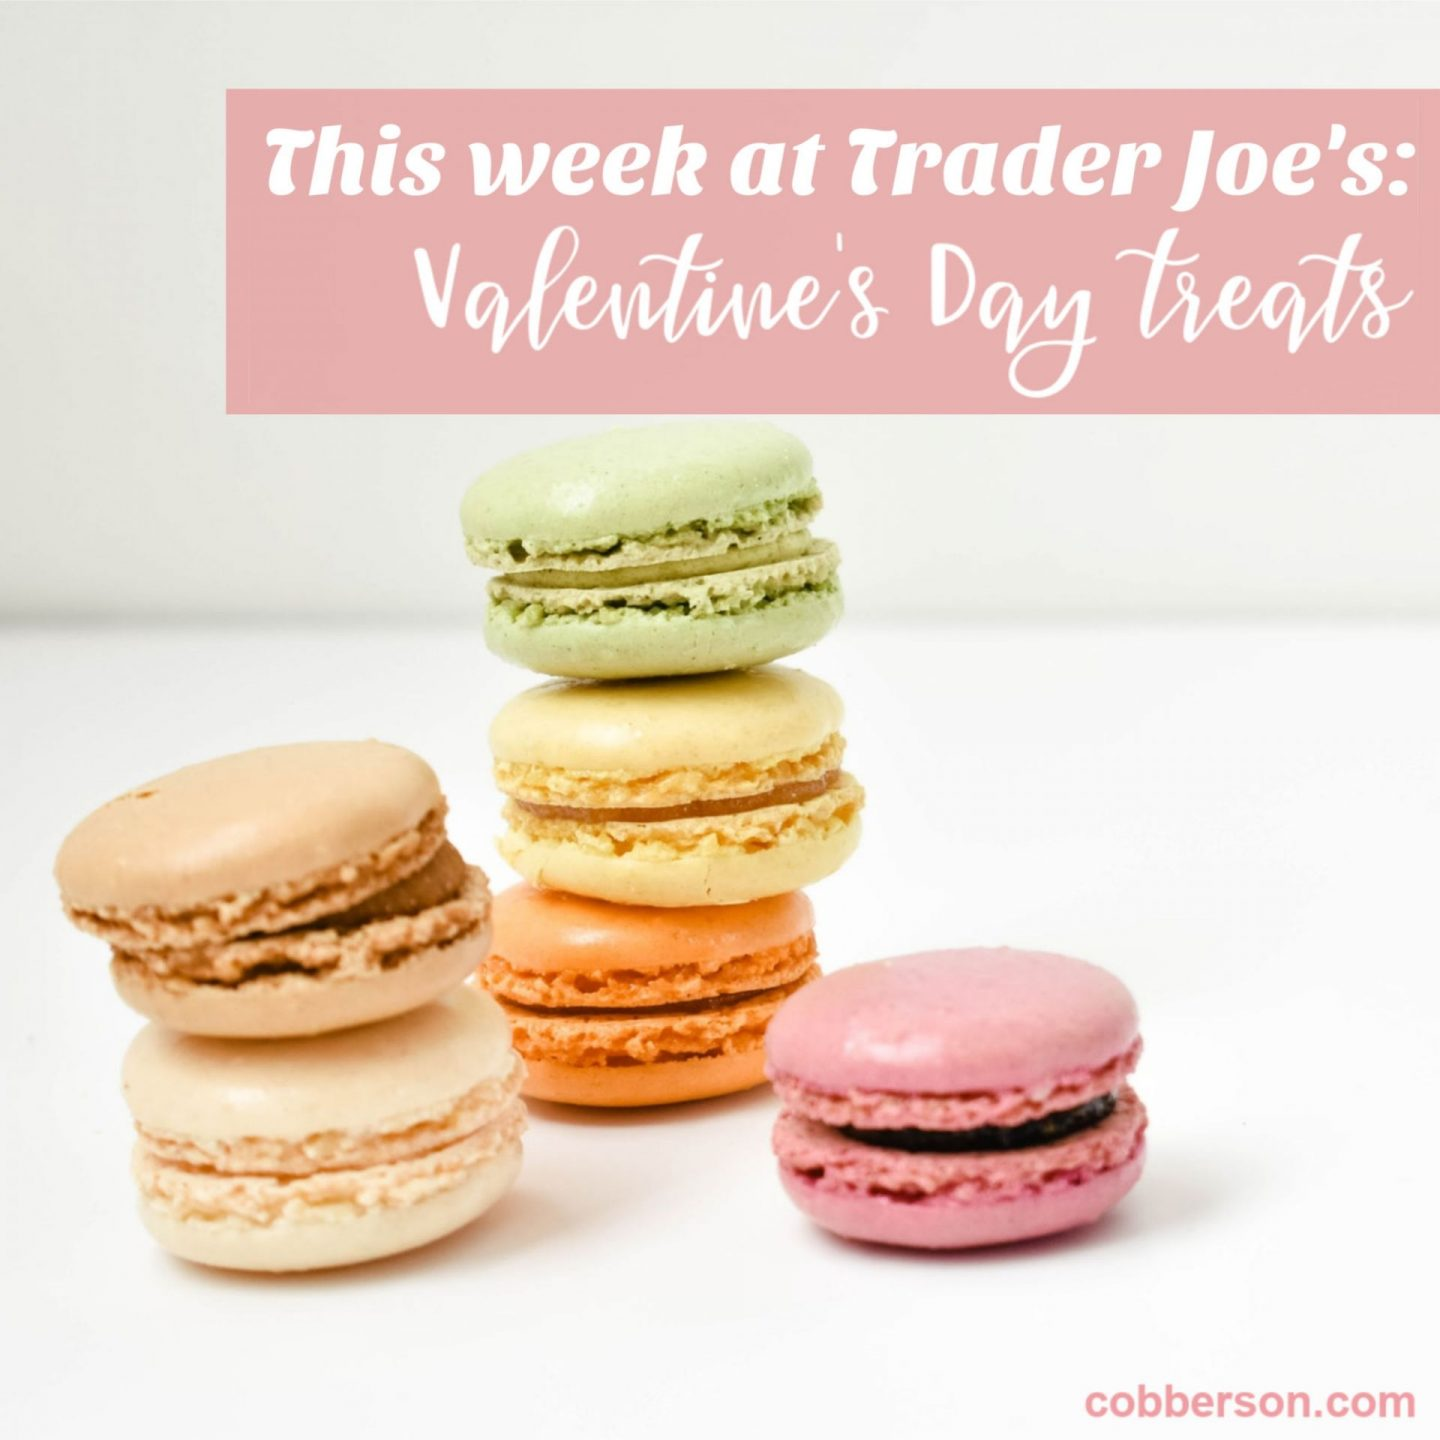 Trader Joe's Valentine's Day treats